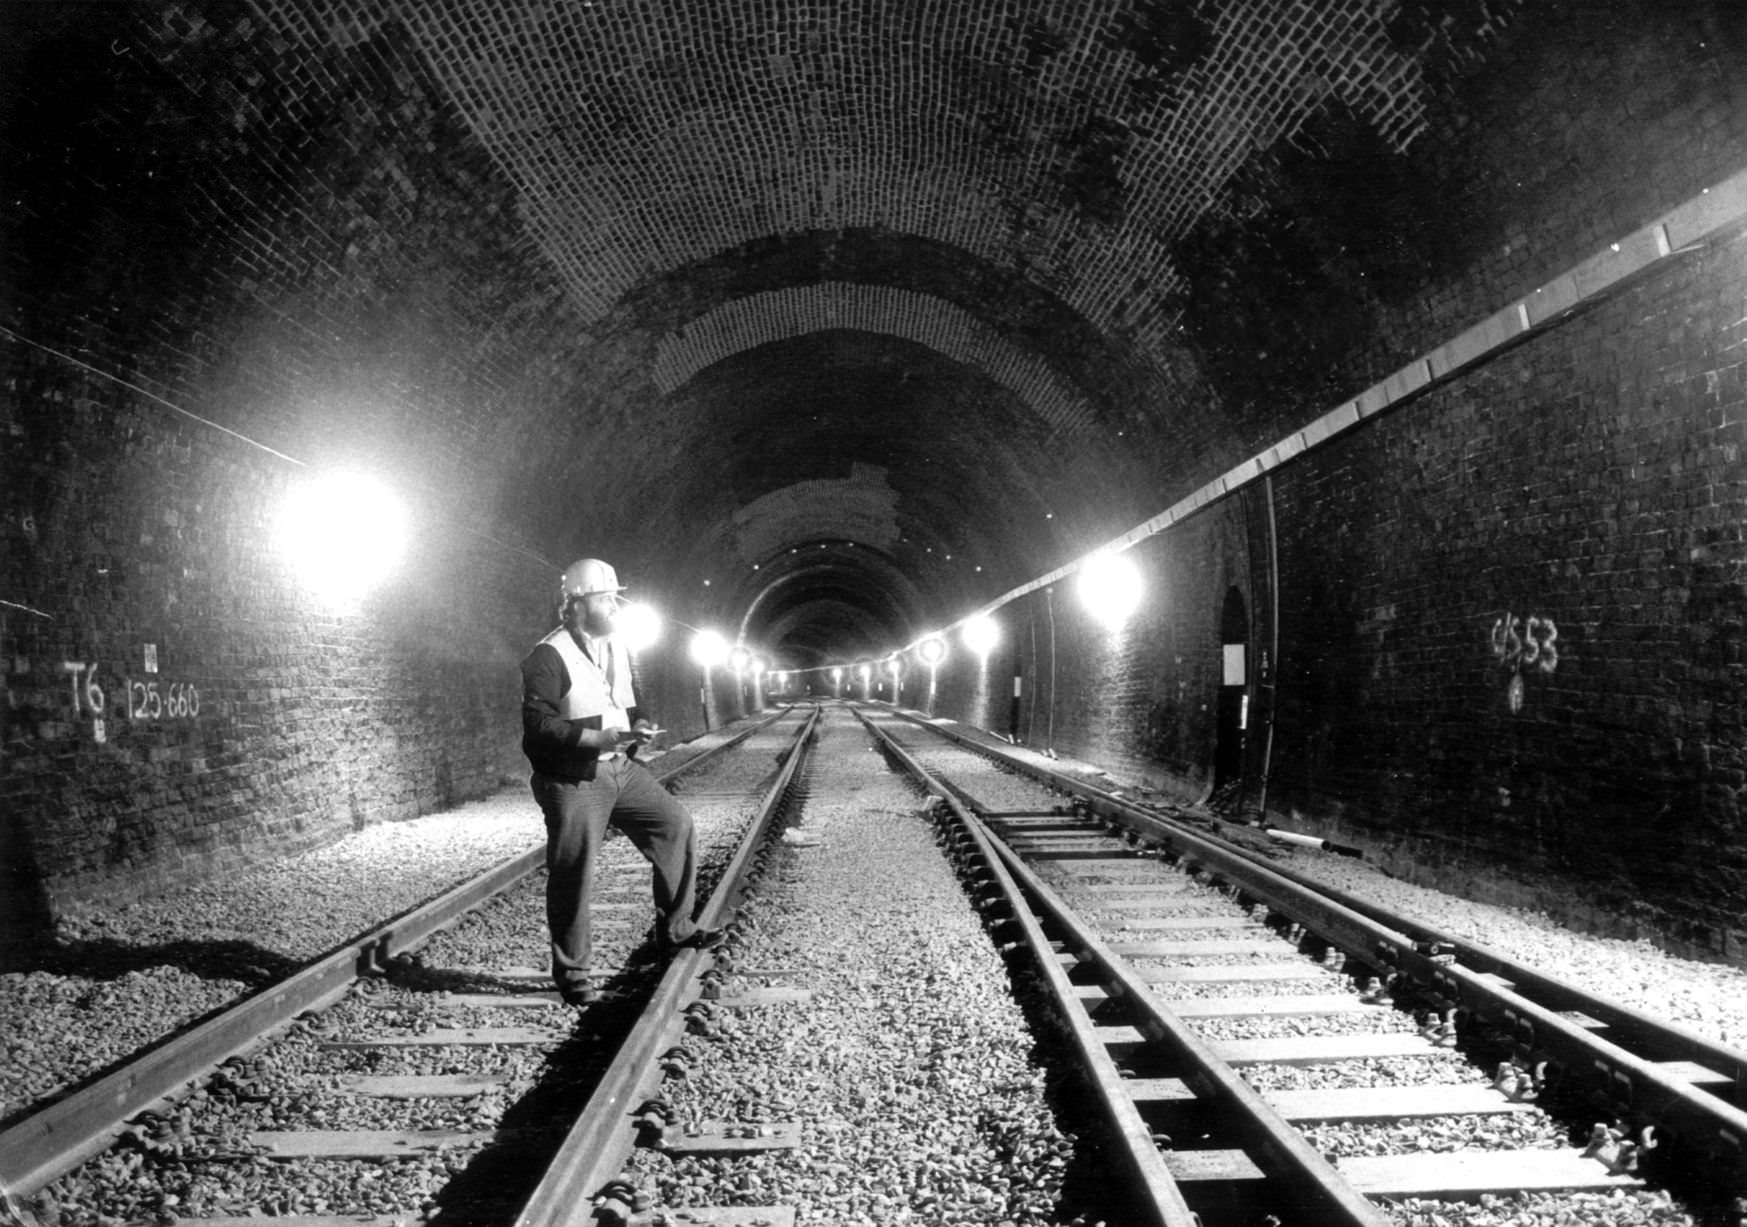 Completed trackwork inside Snow Hill Tunnel as pictured on 13th August 1987 ready for the re-opening of rail services from Birmingham to Stratford